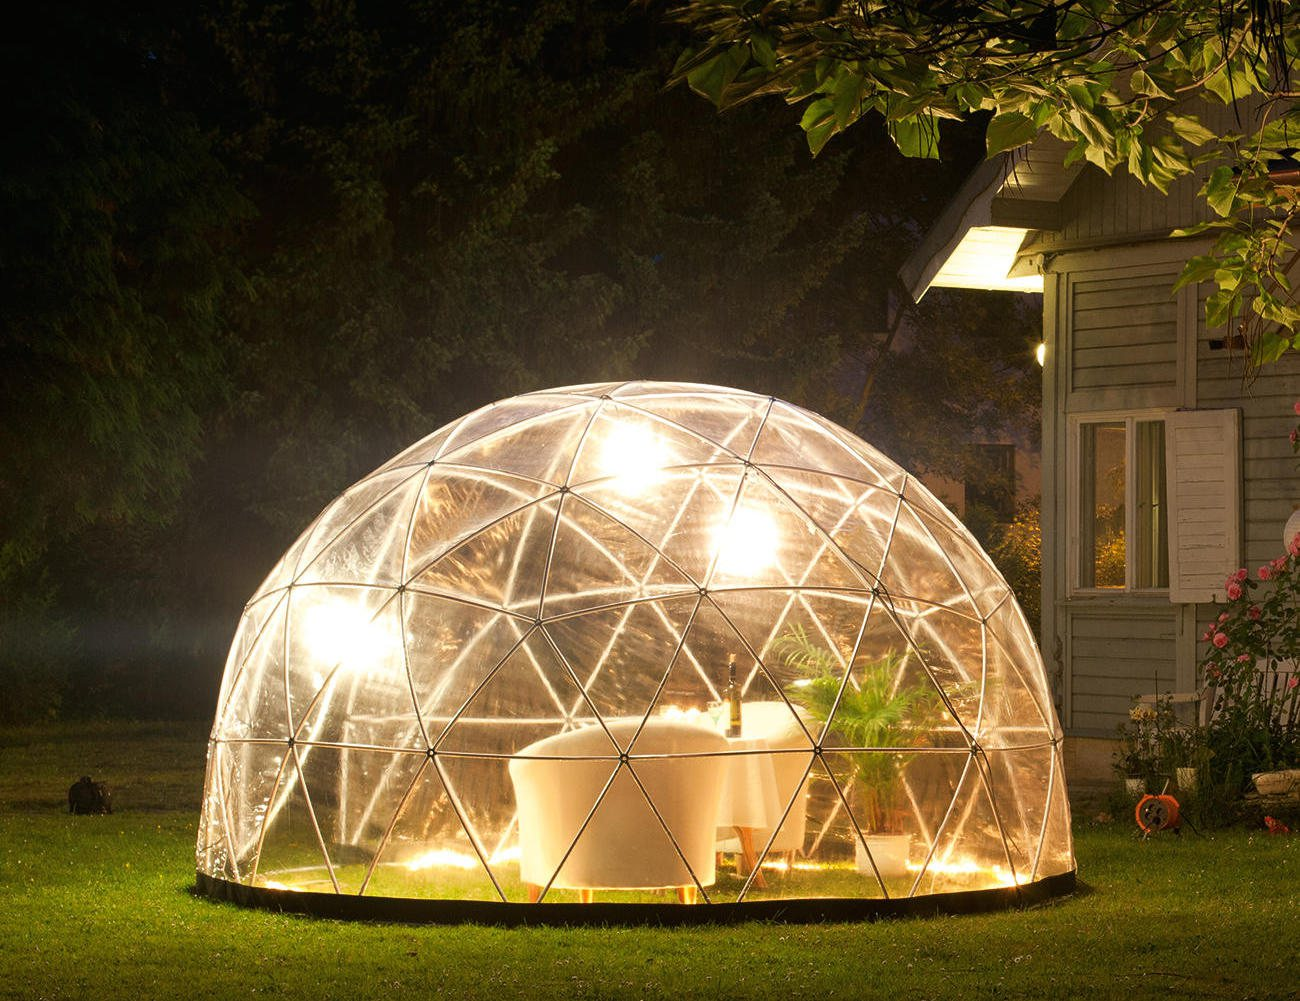 Garden Igloo - Outdoor Living Space For Your Garden ... on Garden And Outdoor Living id=19663